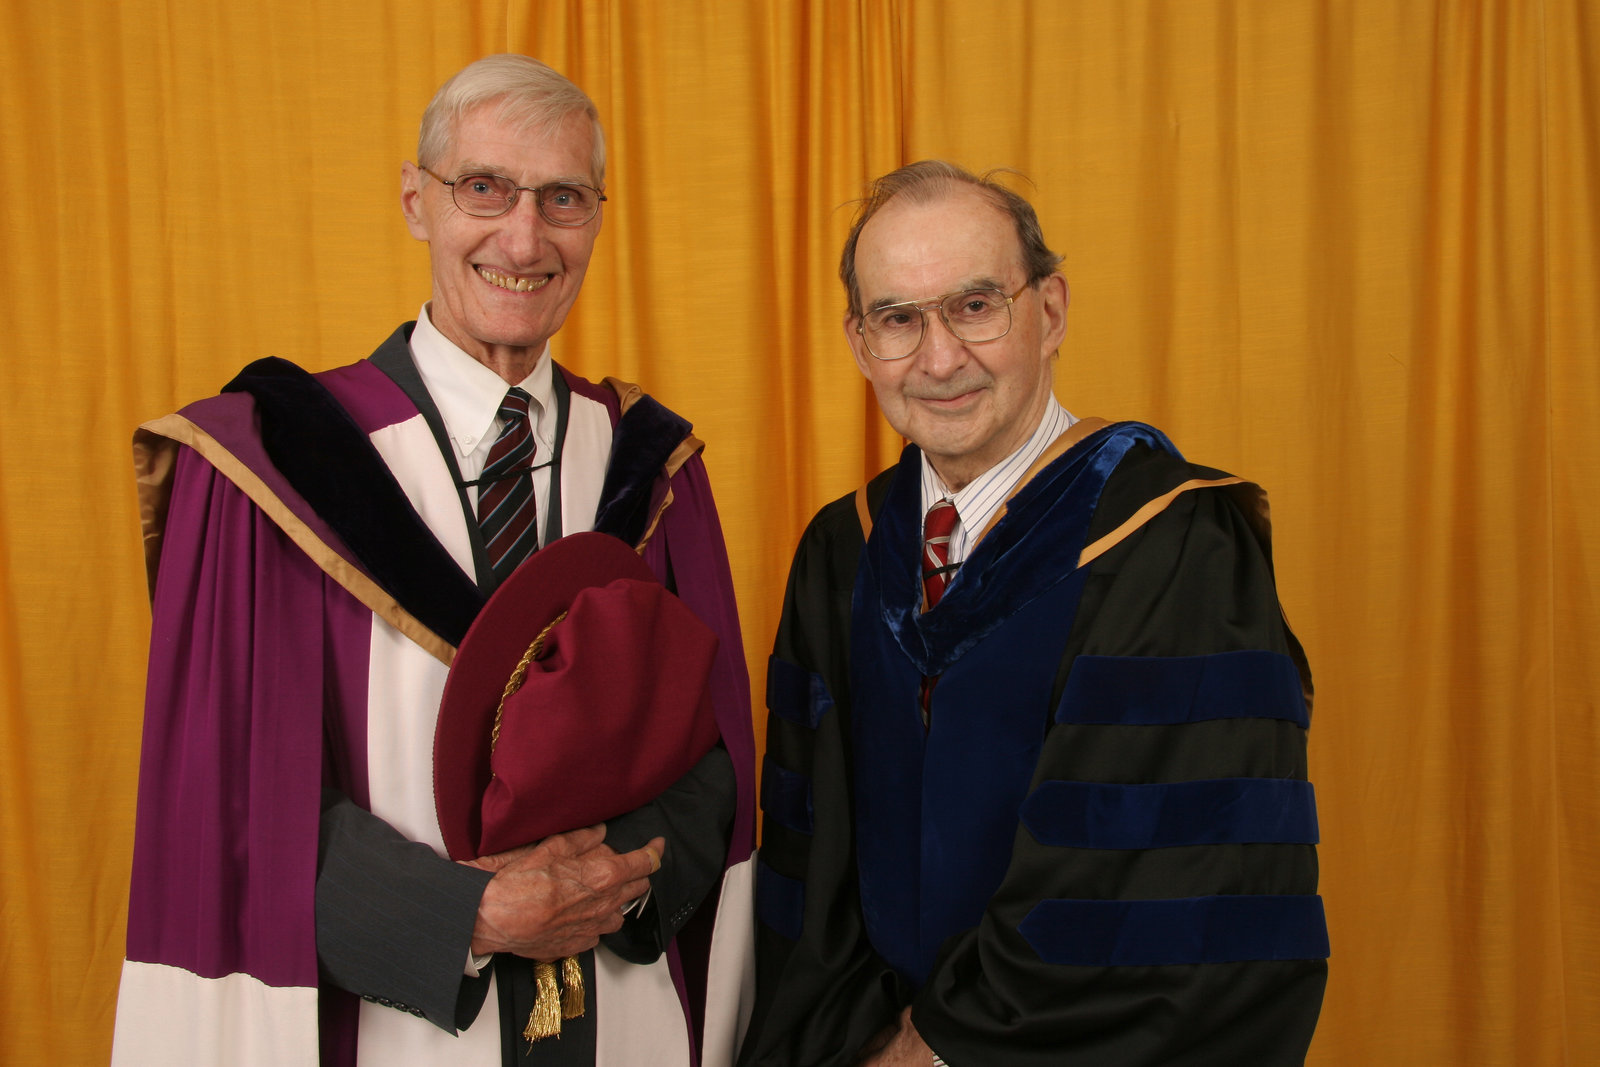 Don Morgenson and John Weir, Wilfrid Laurier University spring convocation, 2006